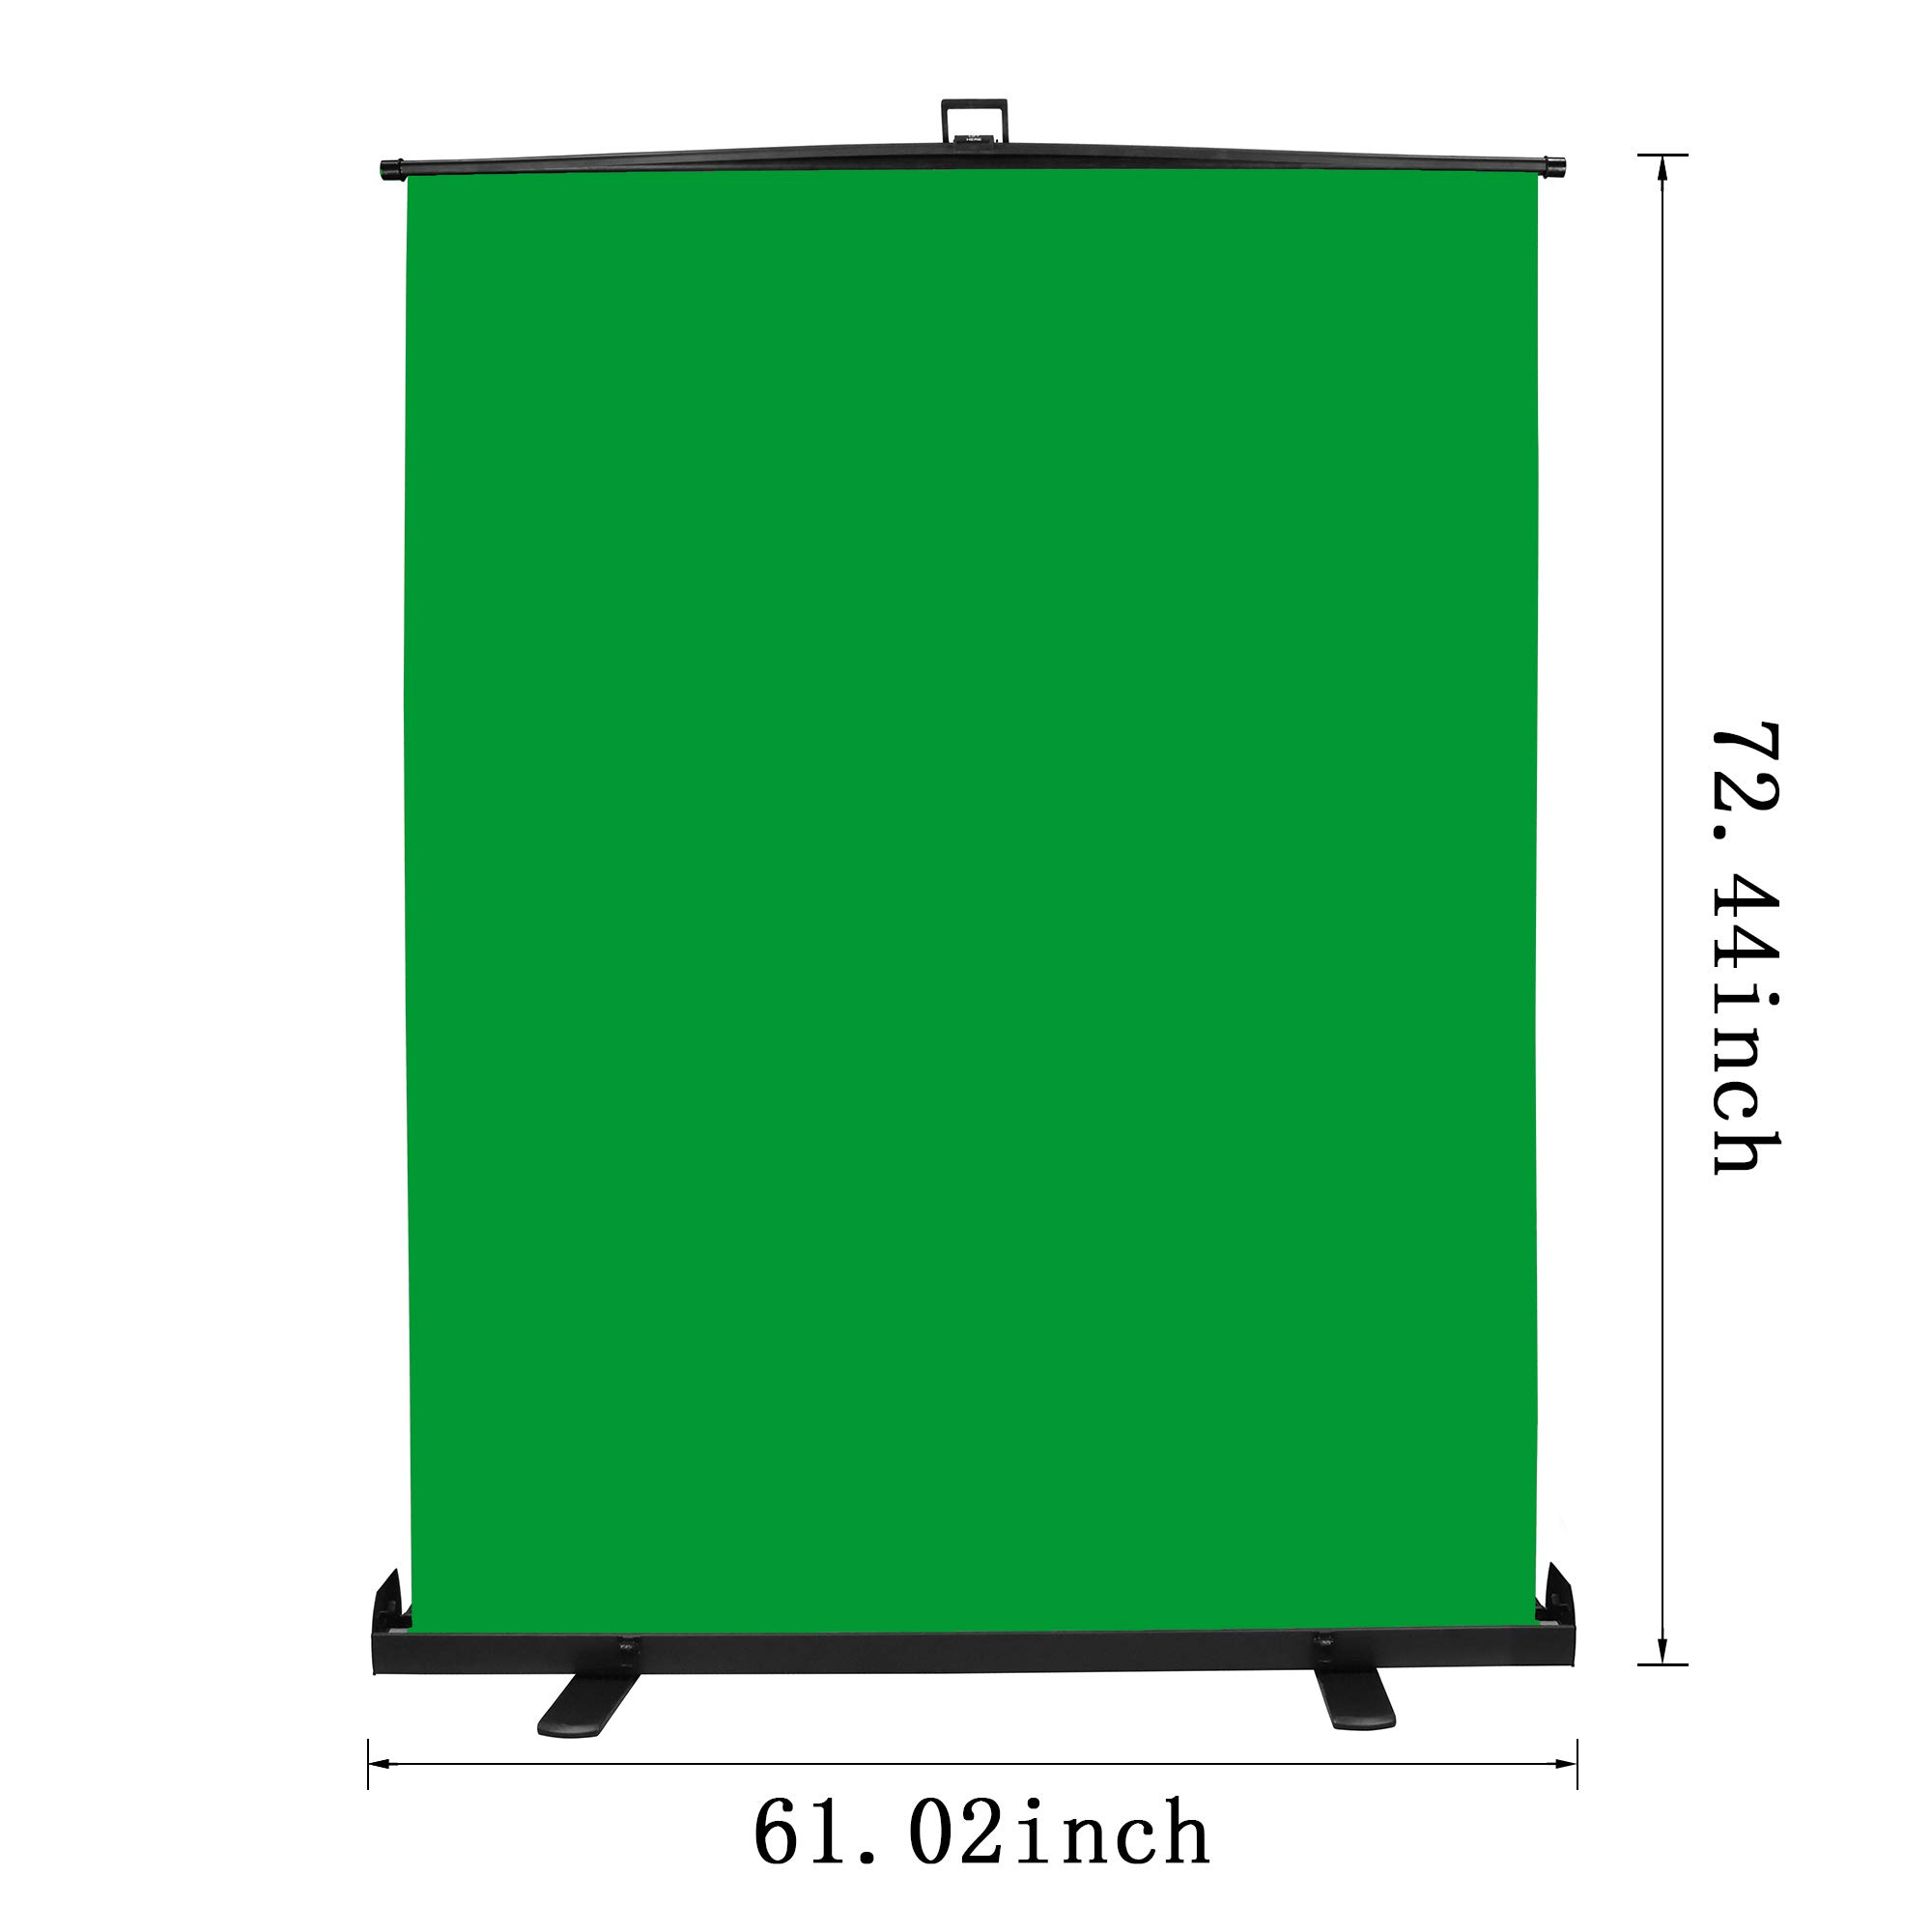 Emart Green Screen, Collapsible Chromakey Panel for Photo Backdrop Video Studio,Portable Pull Up Wrinkle-Resistant Greenscreen Background, Auto-Locking Air Cushion Frame, Solid Safety Aluminium Base by EMART (Image #3)